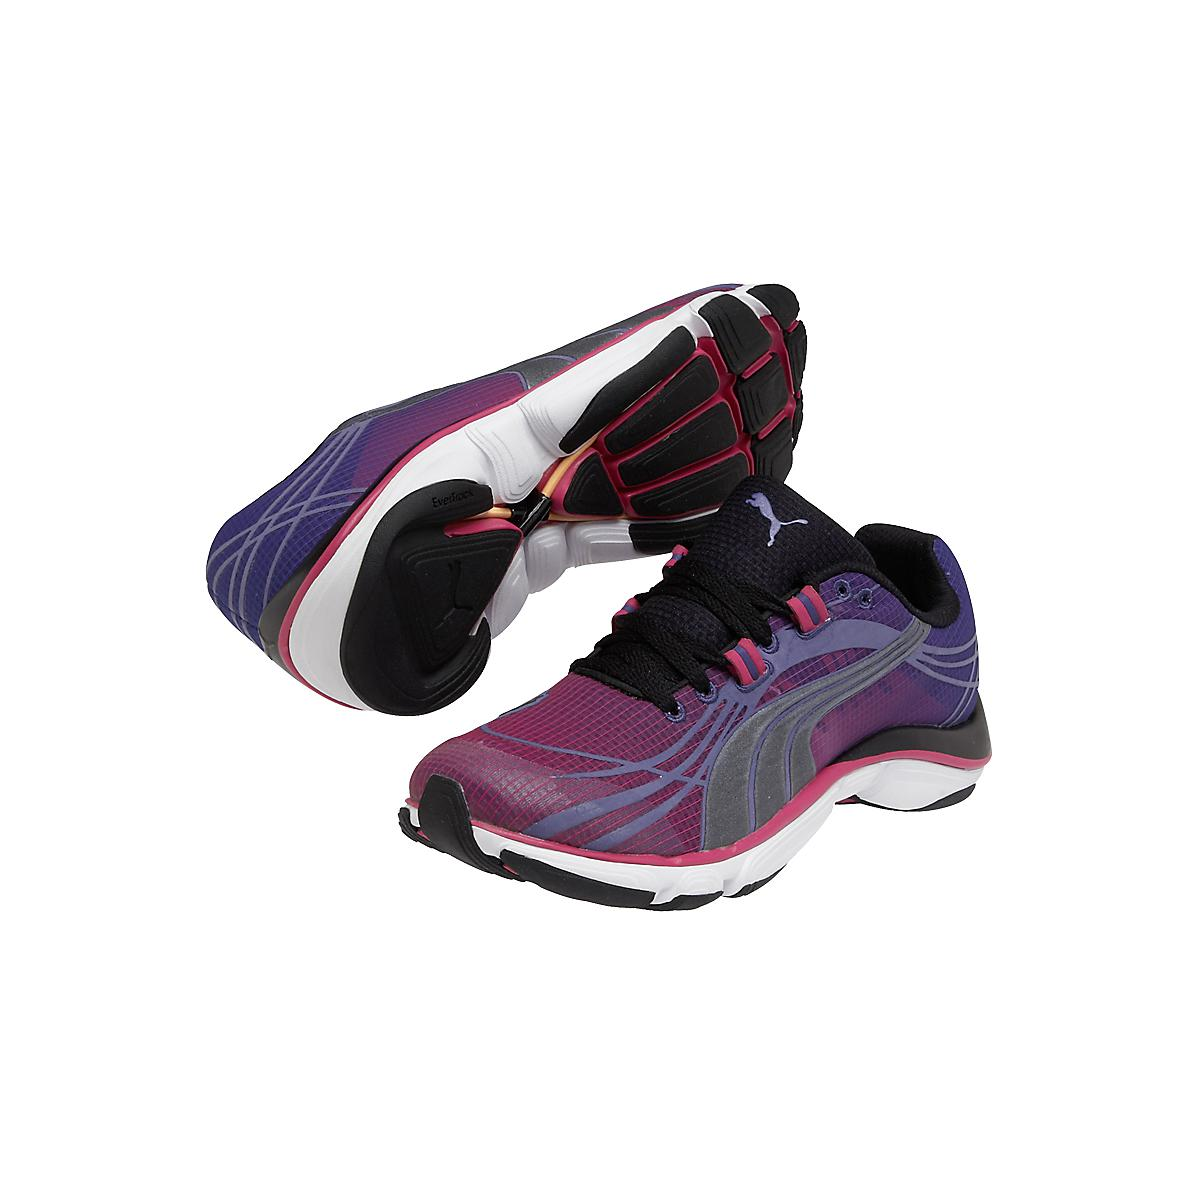 Womens Puma Mobium Elite v2 Running Shoe at Road Runner Sports